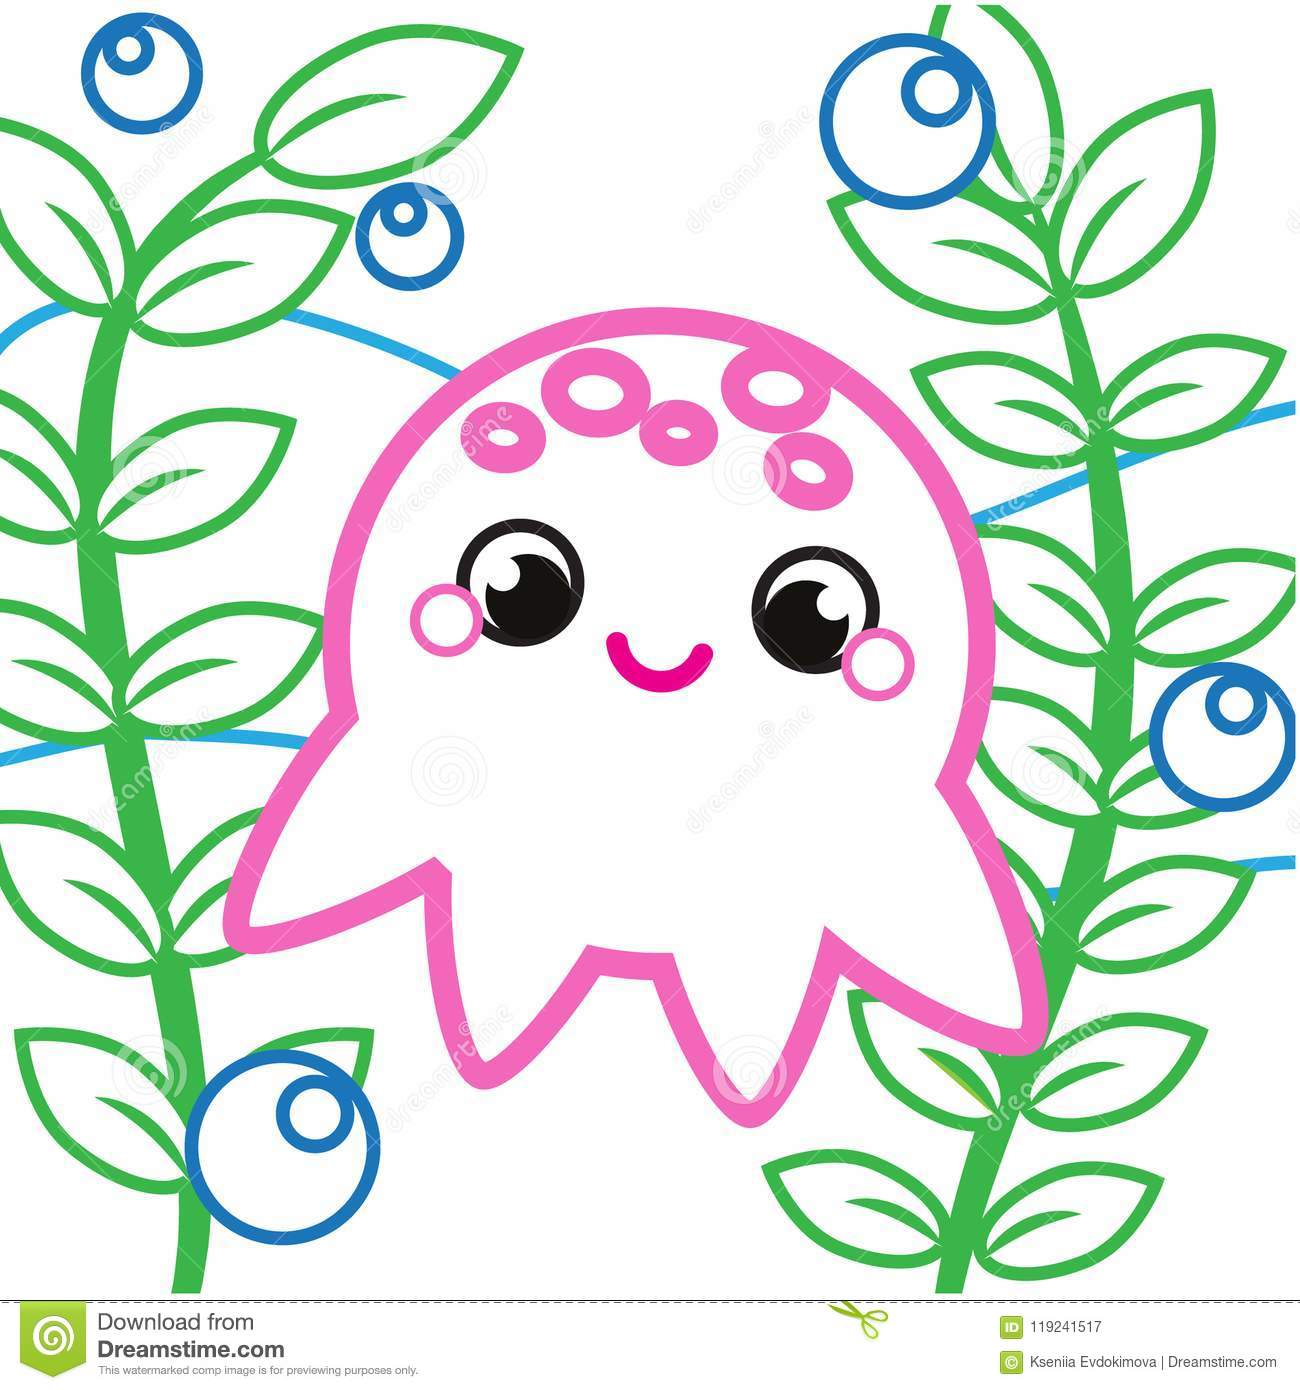 Simple Coloring Page For Toddlers With Cute Octopus Printable